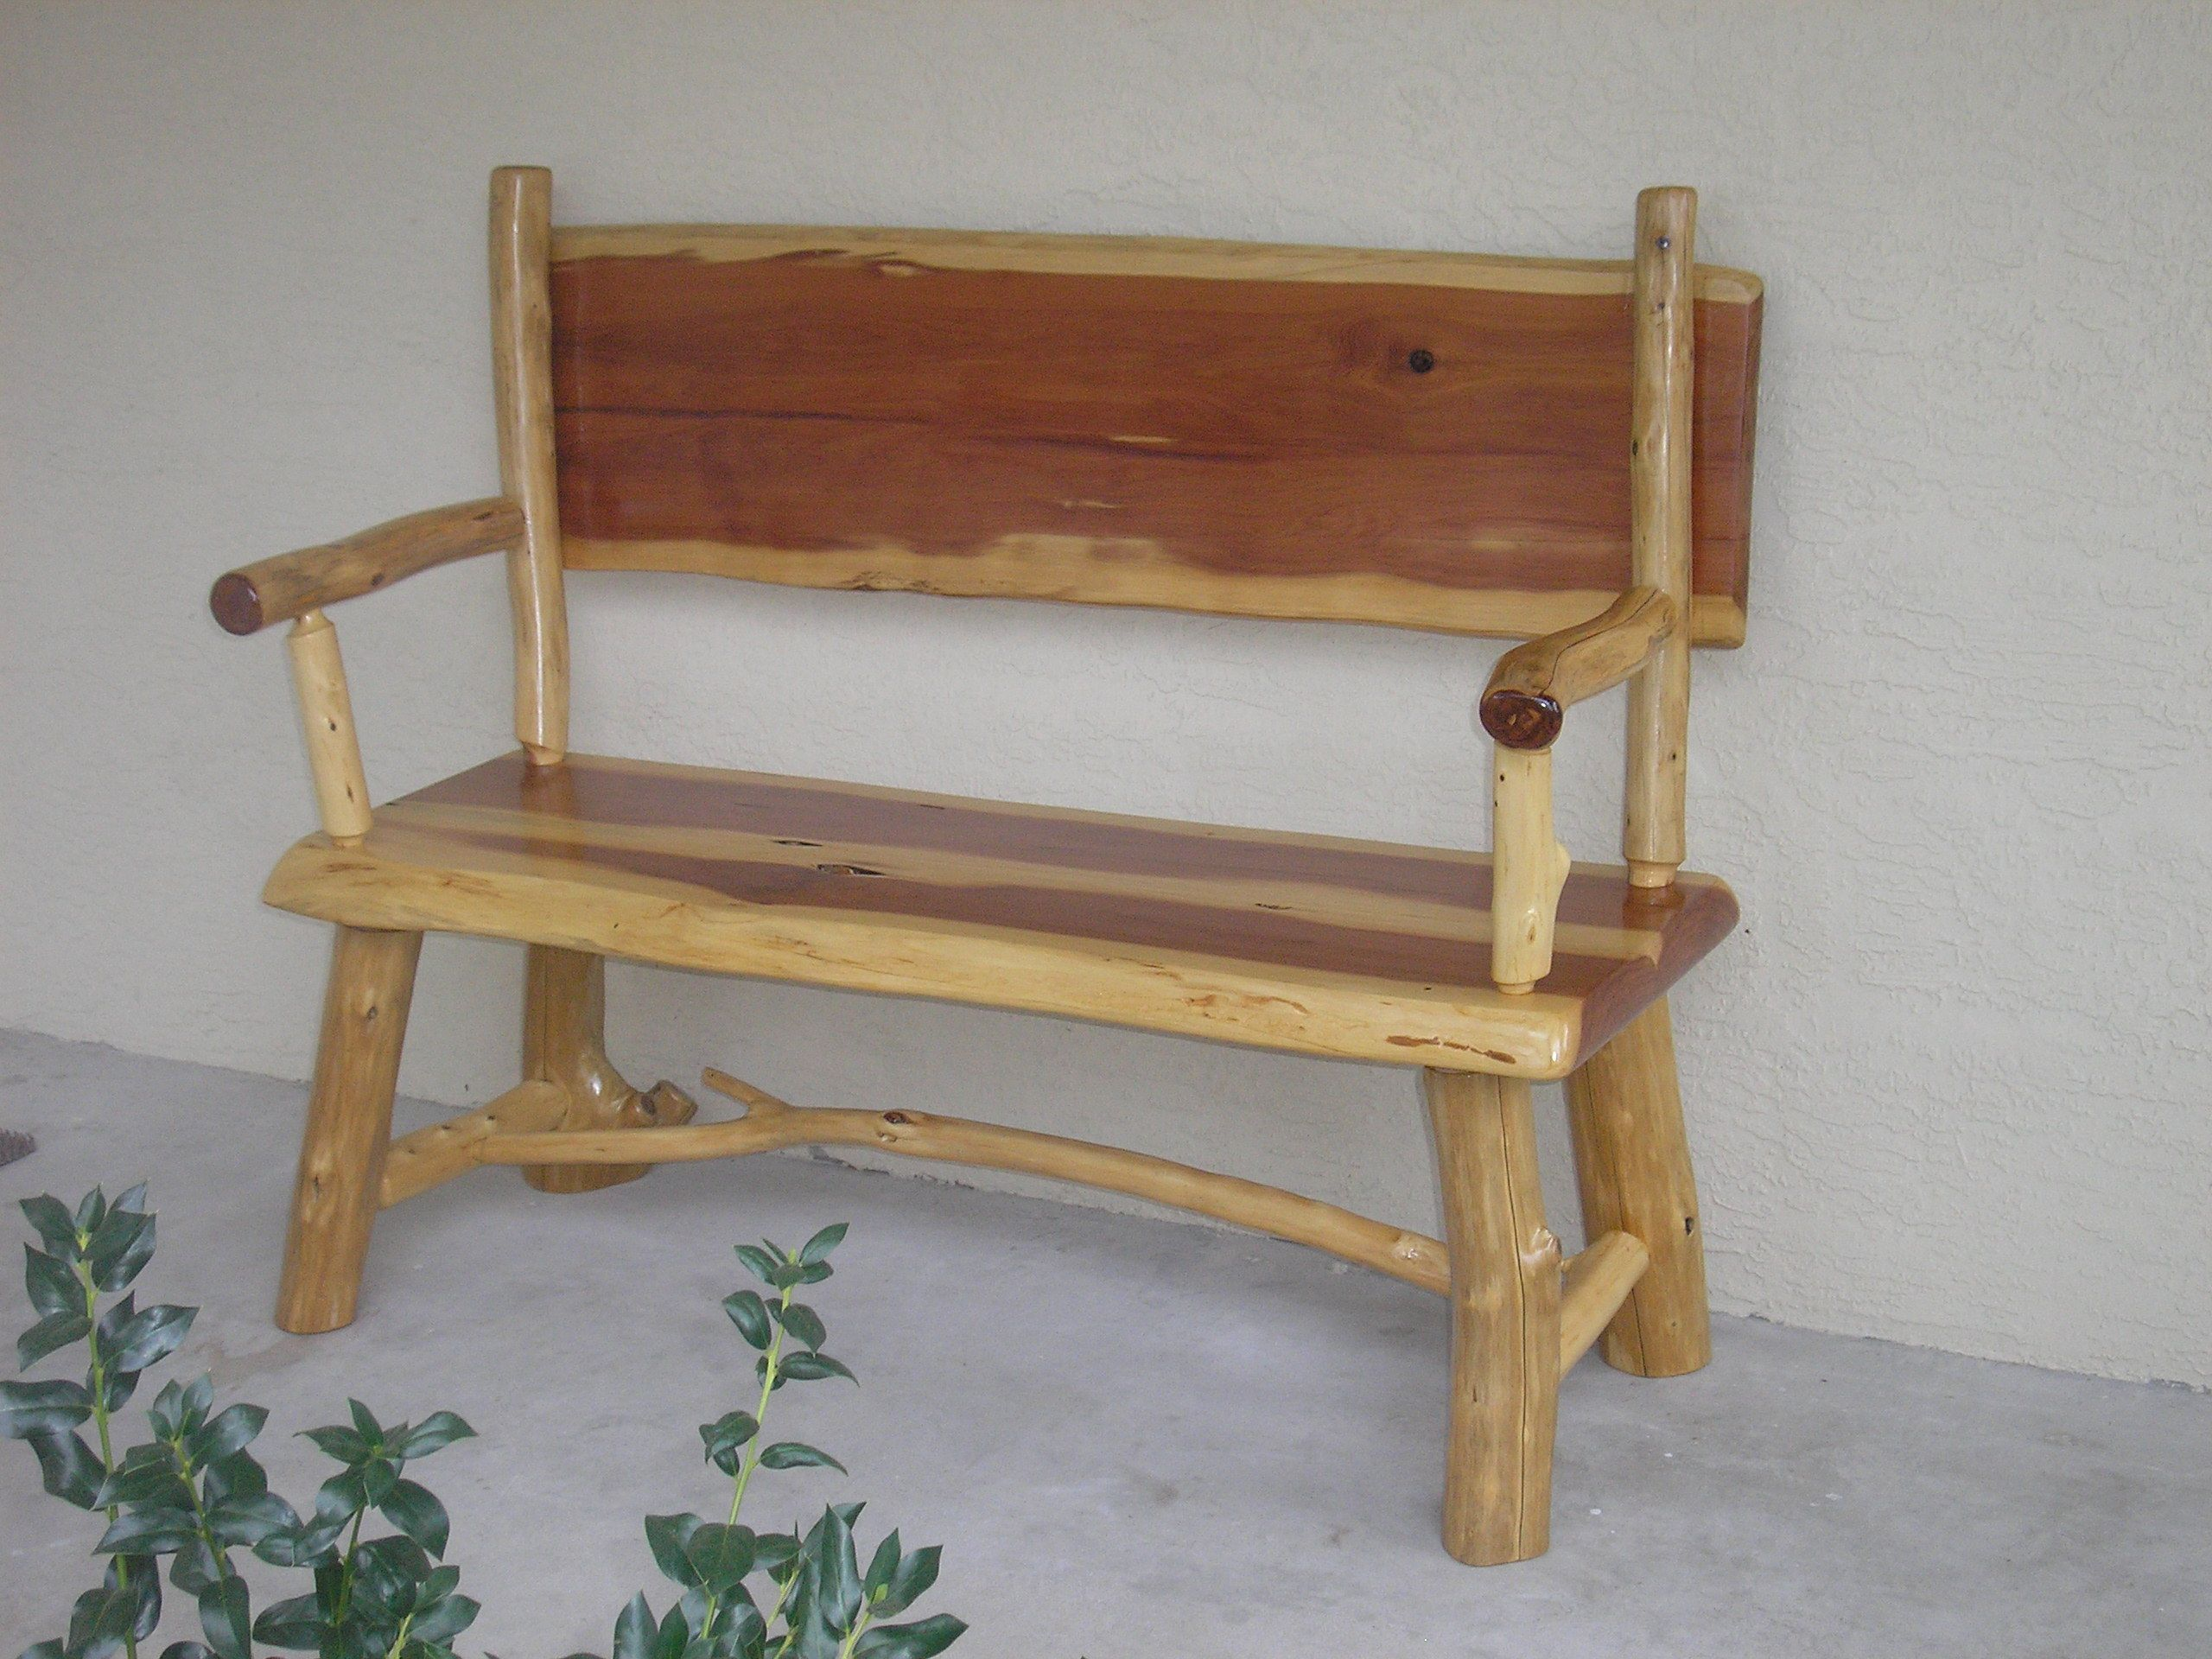 Rustic furniture rustic wood log bench picture cool Pictures of rustic furniture